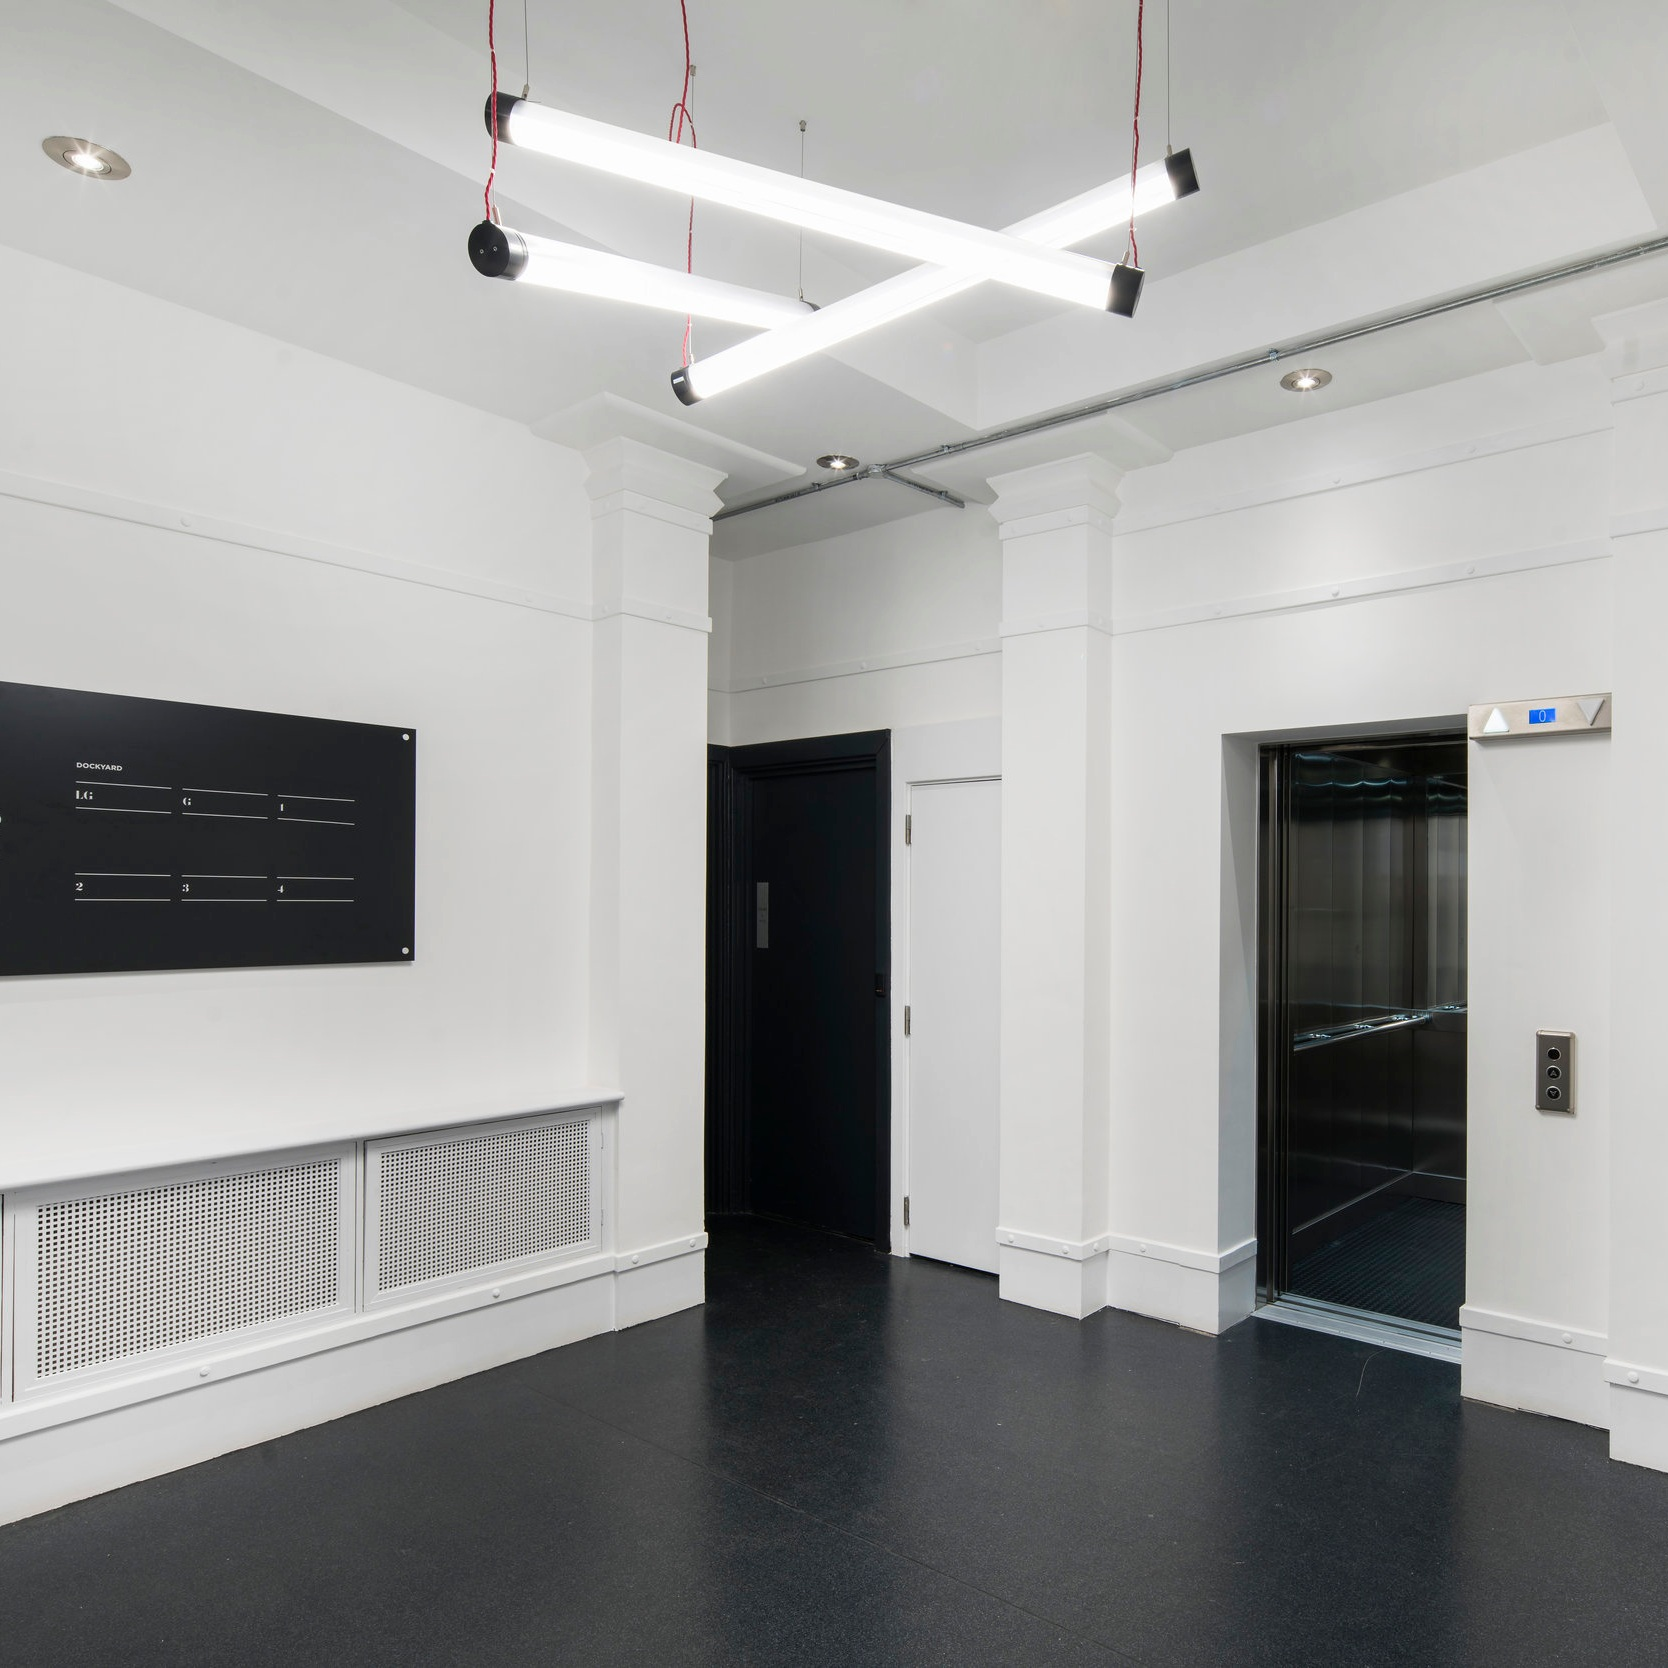 """"""" The design objective for the overall look and feel was to create a blank canvas open plan office space which celebrated the raw and industrial feel of the building. """" - Managing Director 299 Lighting"""